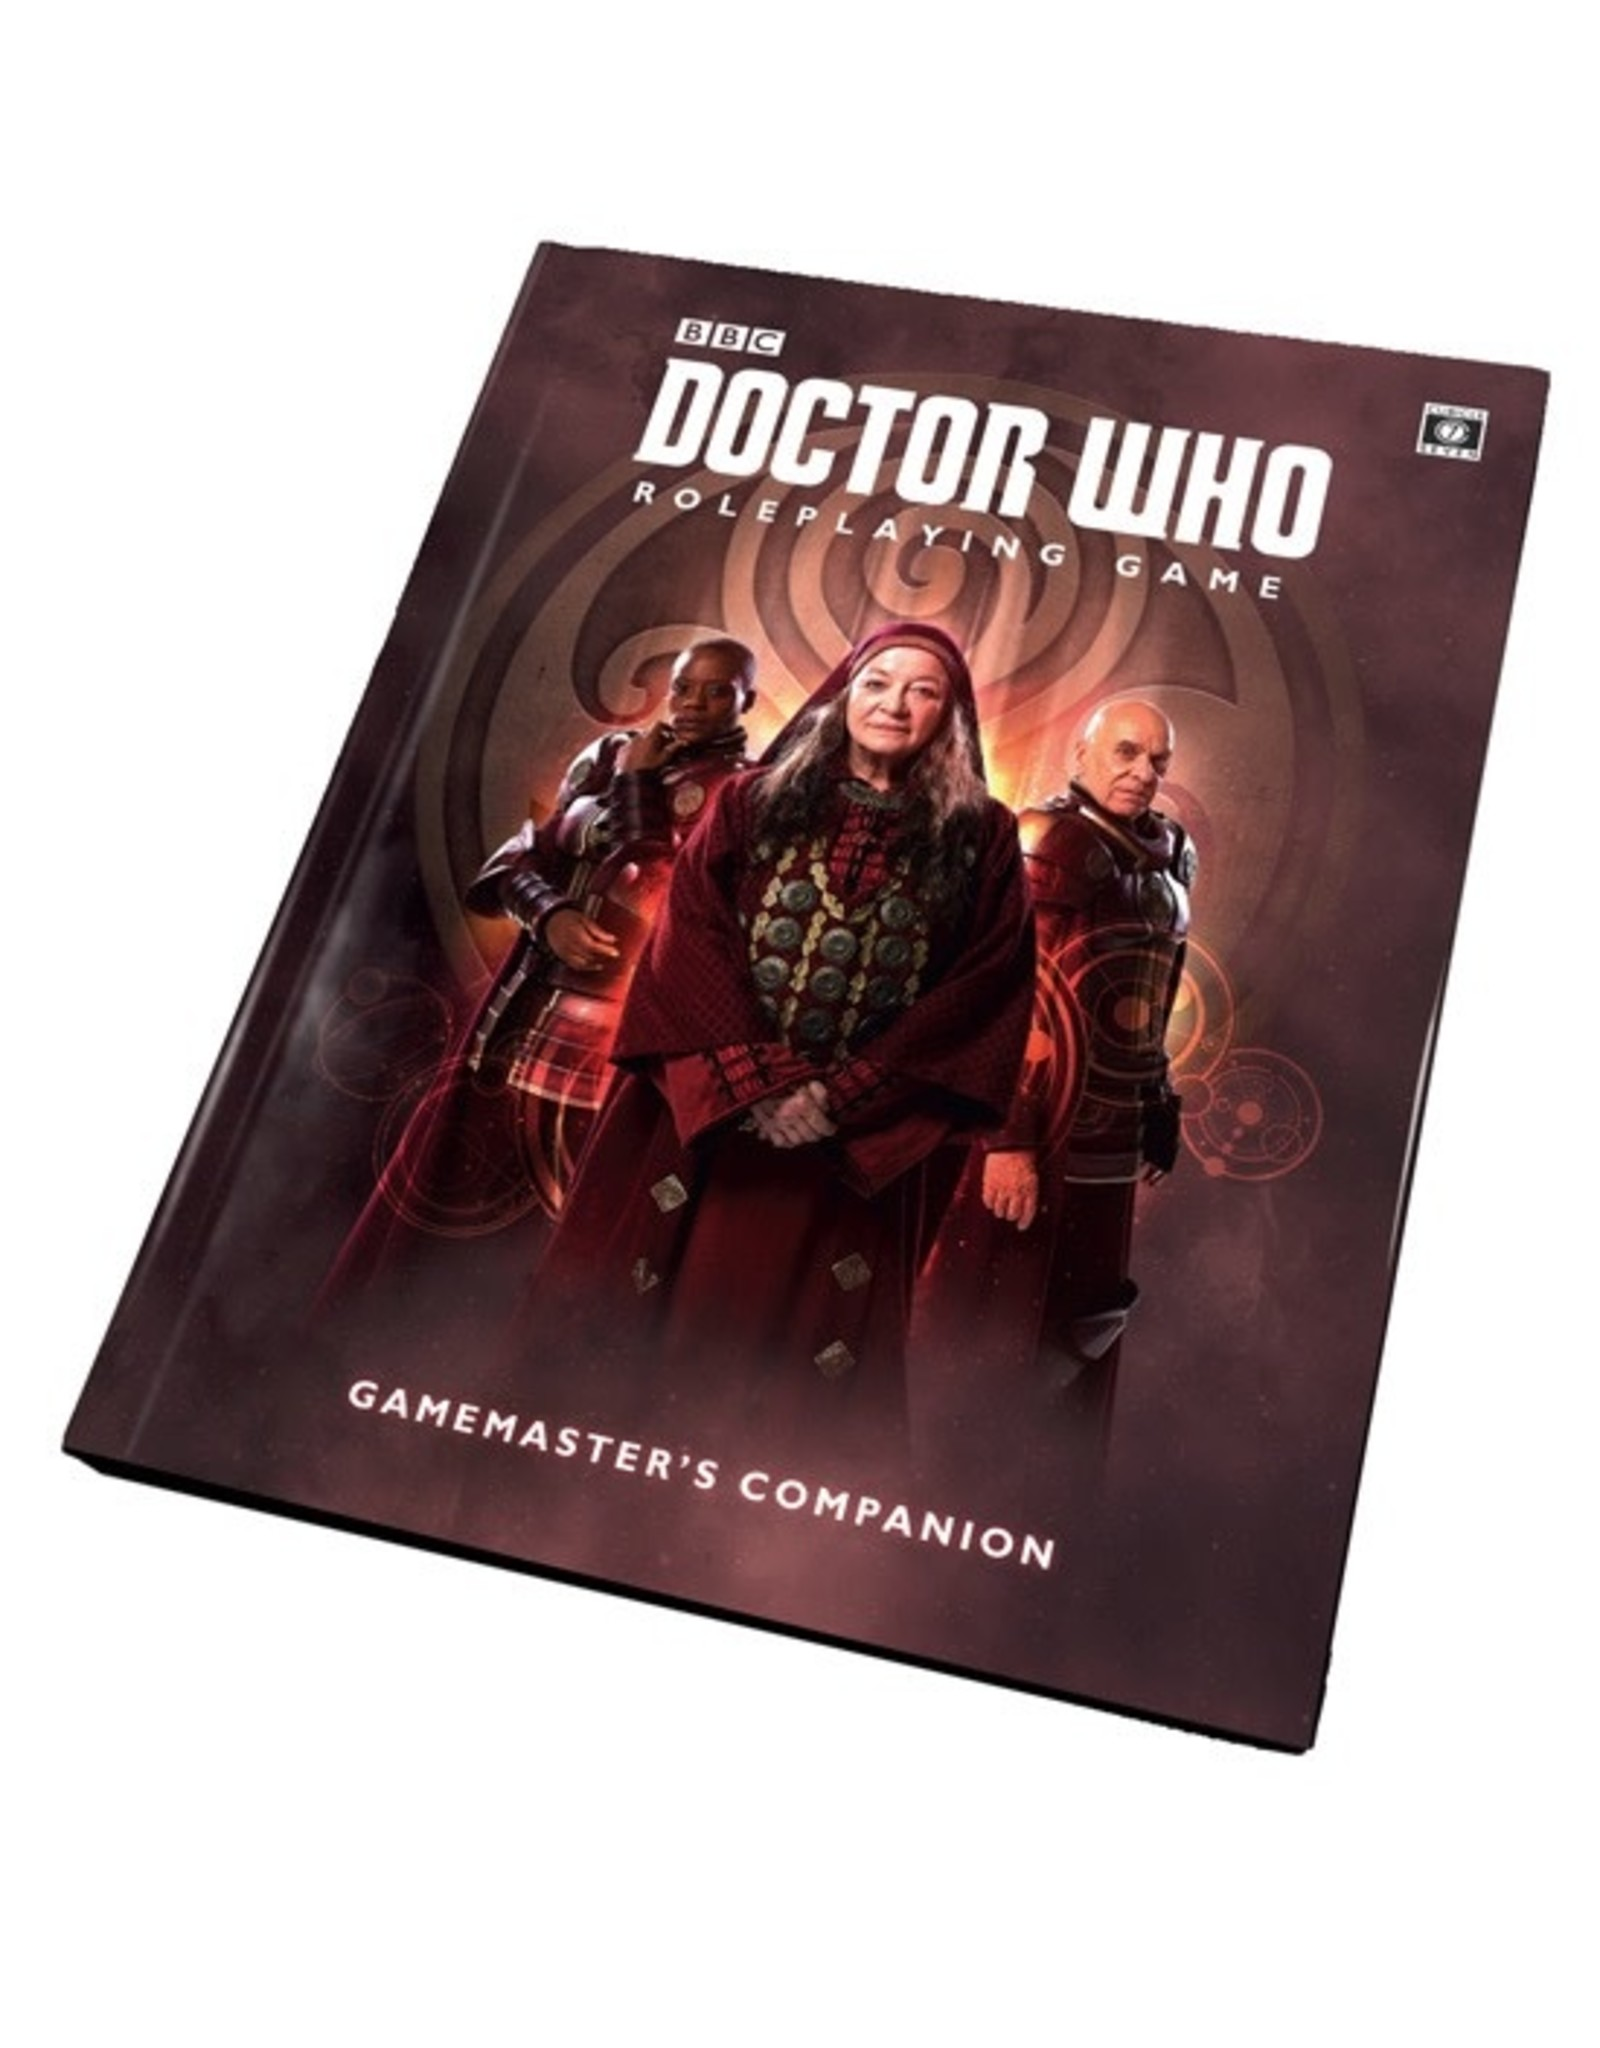 Doctor Who RPG Gamemaster's Companion